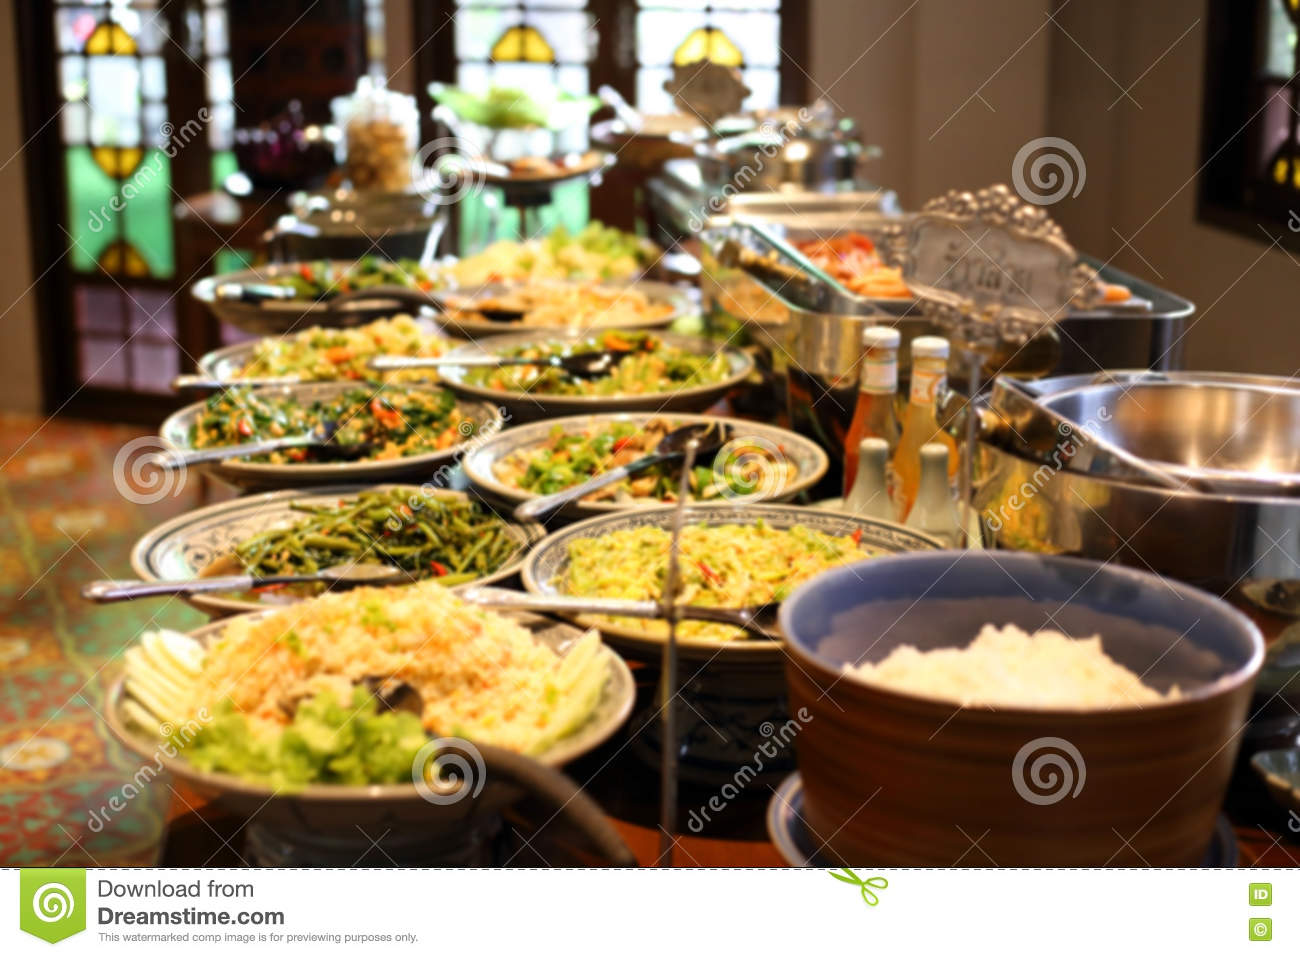 blurred image breakfast buffet table at hotel restaurant stock image image 73572359. Black Bedroom Furniture Sets. Home Design Ideas